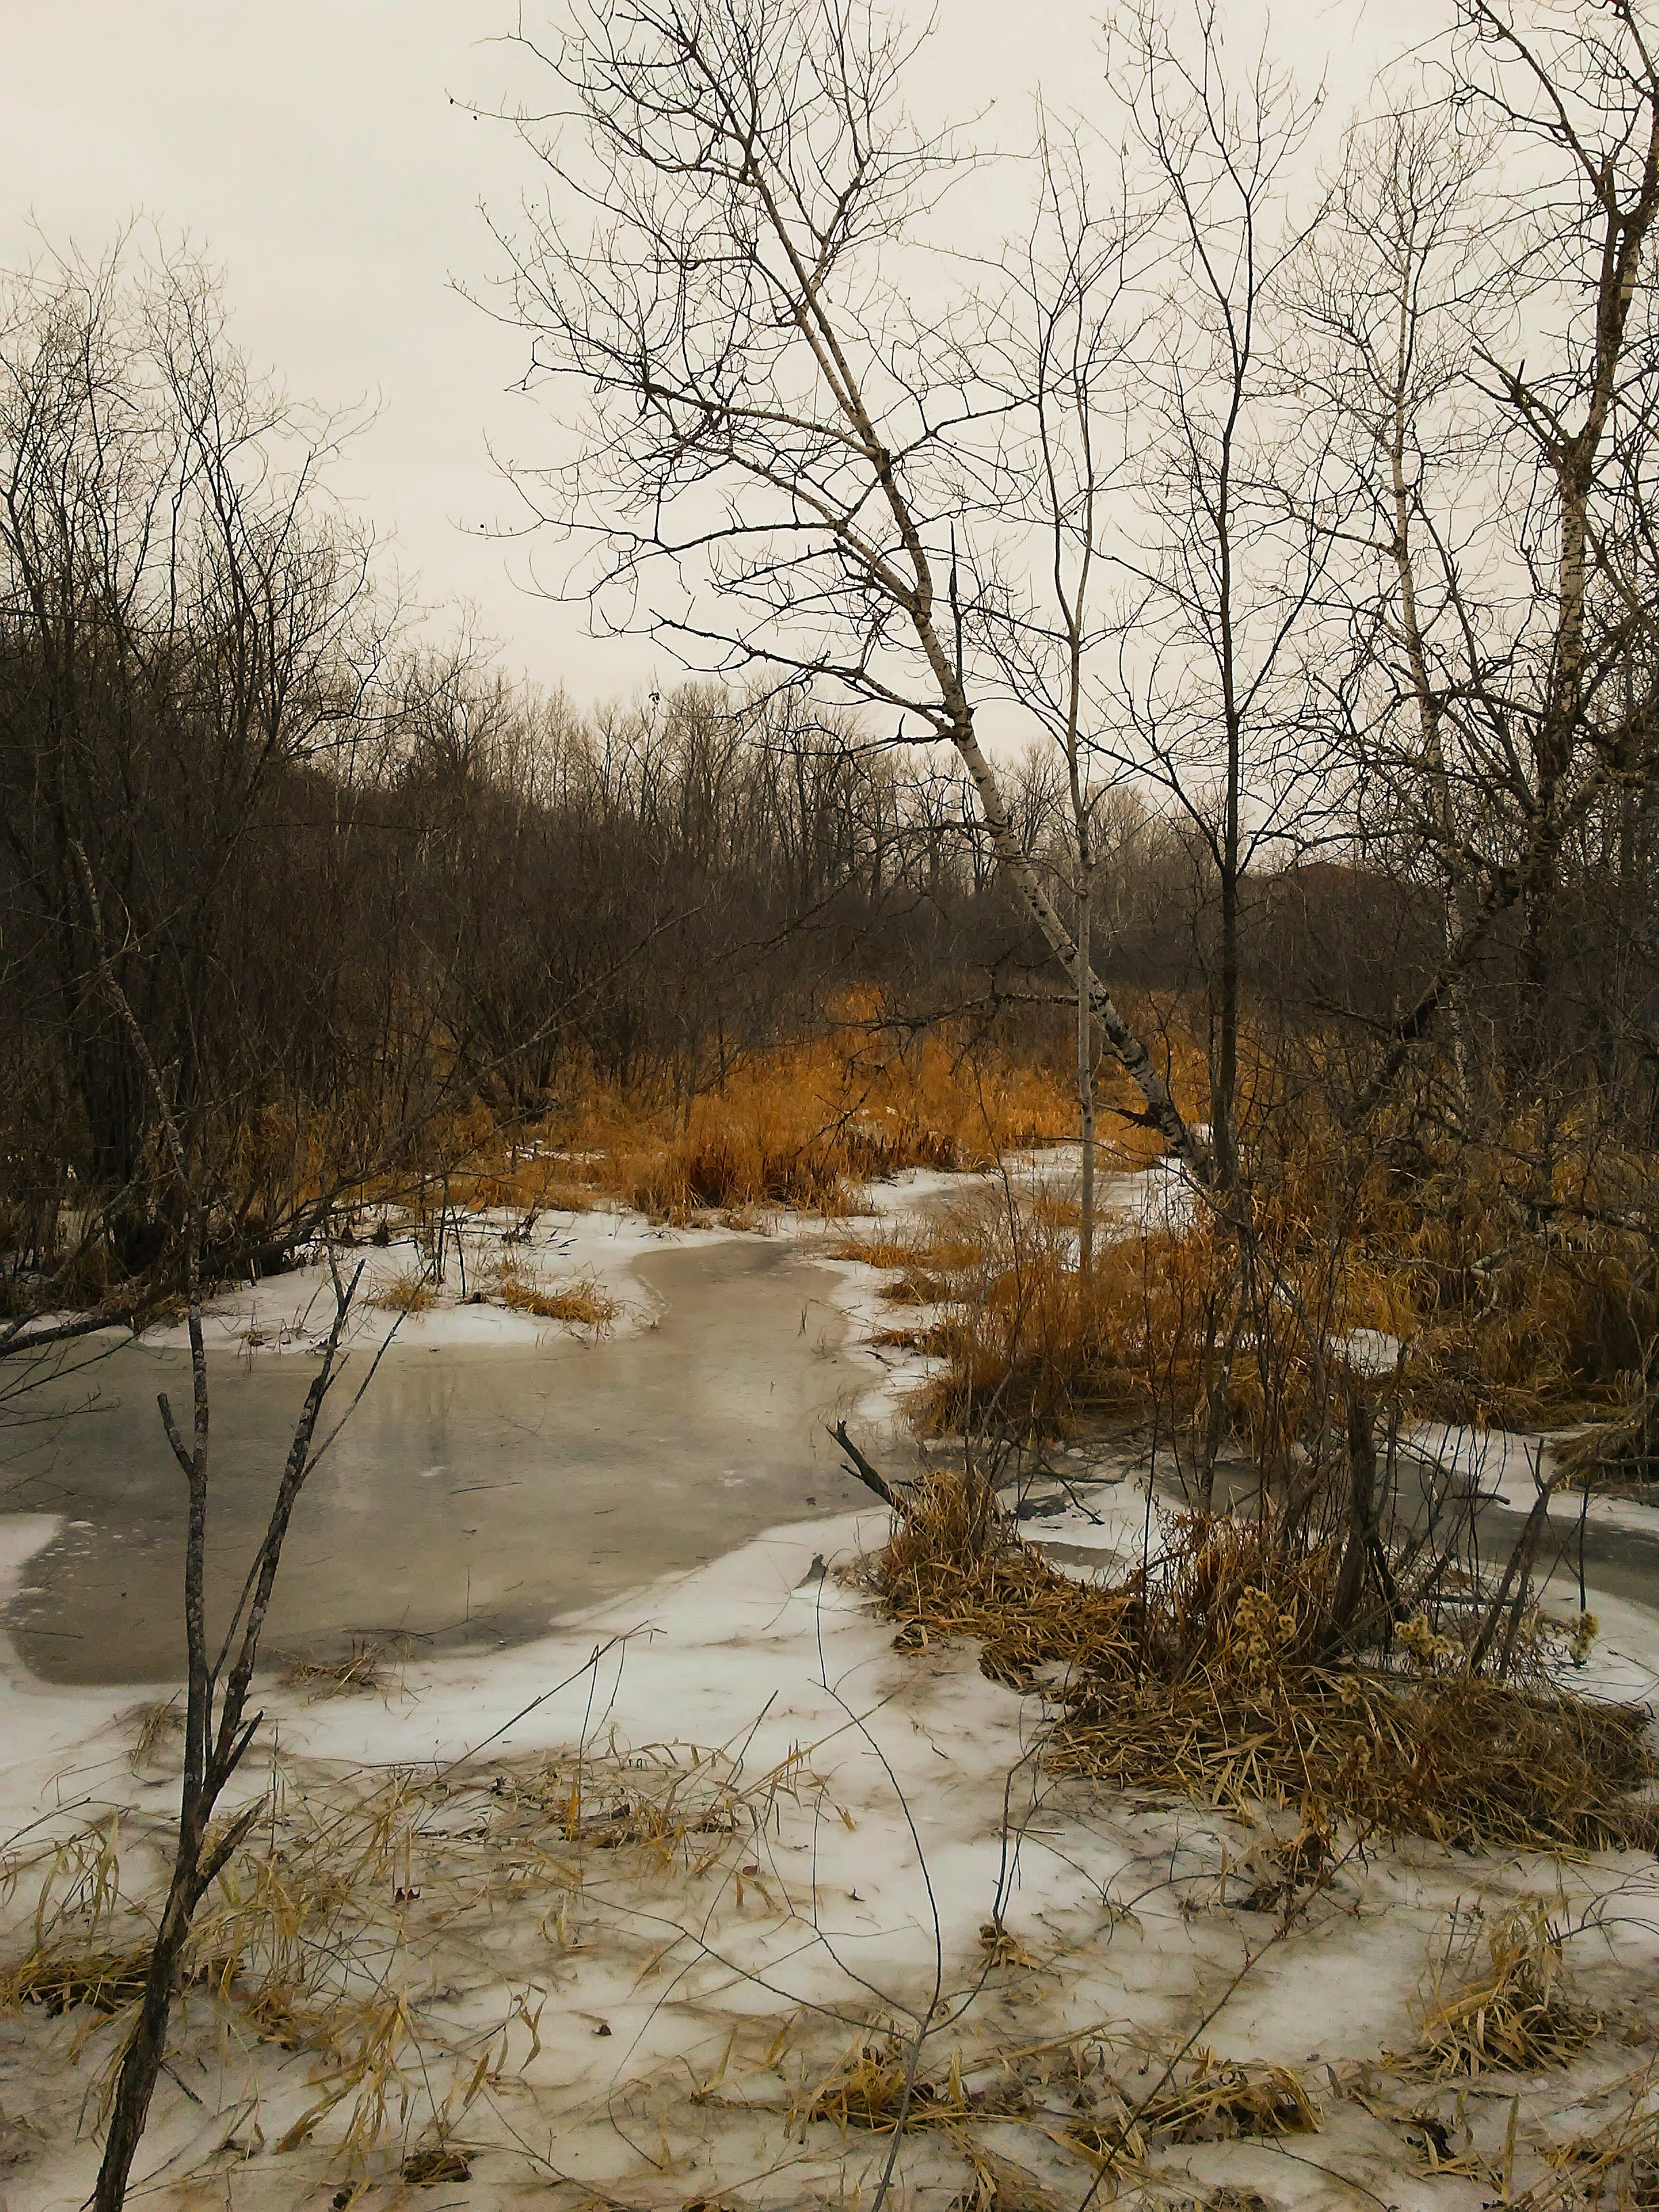 Birch and a stream and golden long grasses